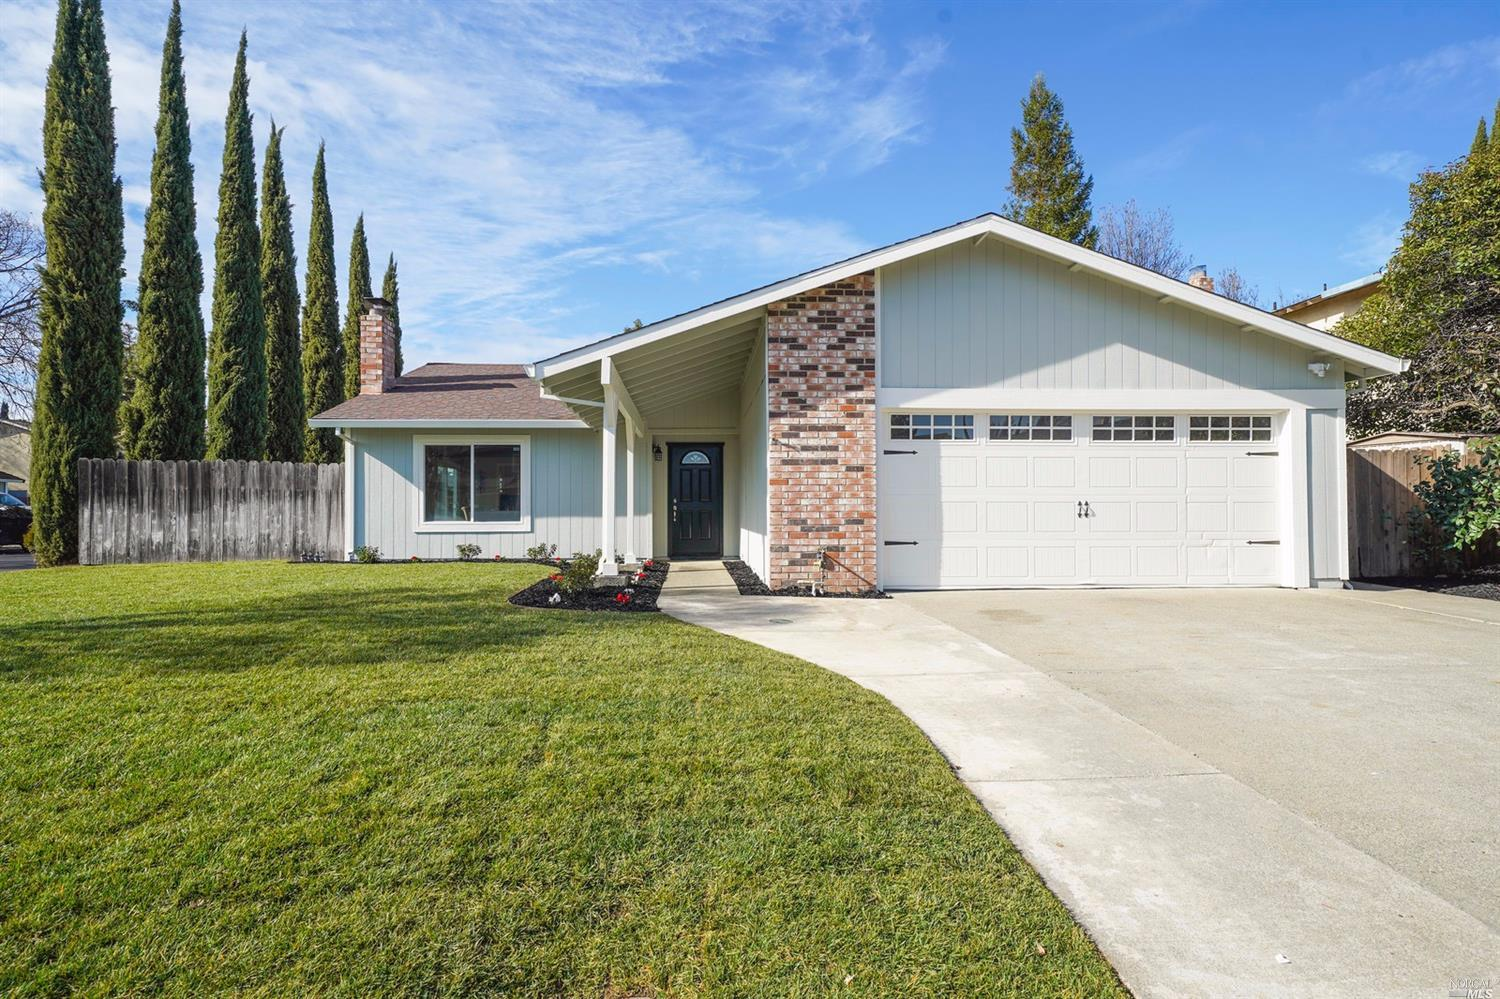 Honey...Stop the CAR! 4/2 SS in Vacaville, near schools, shopping and parks. New Kitchen, New Floors